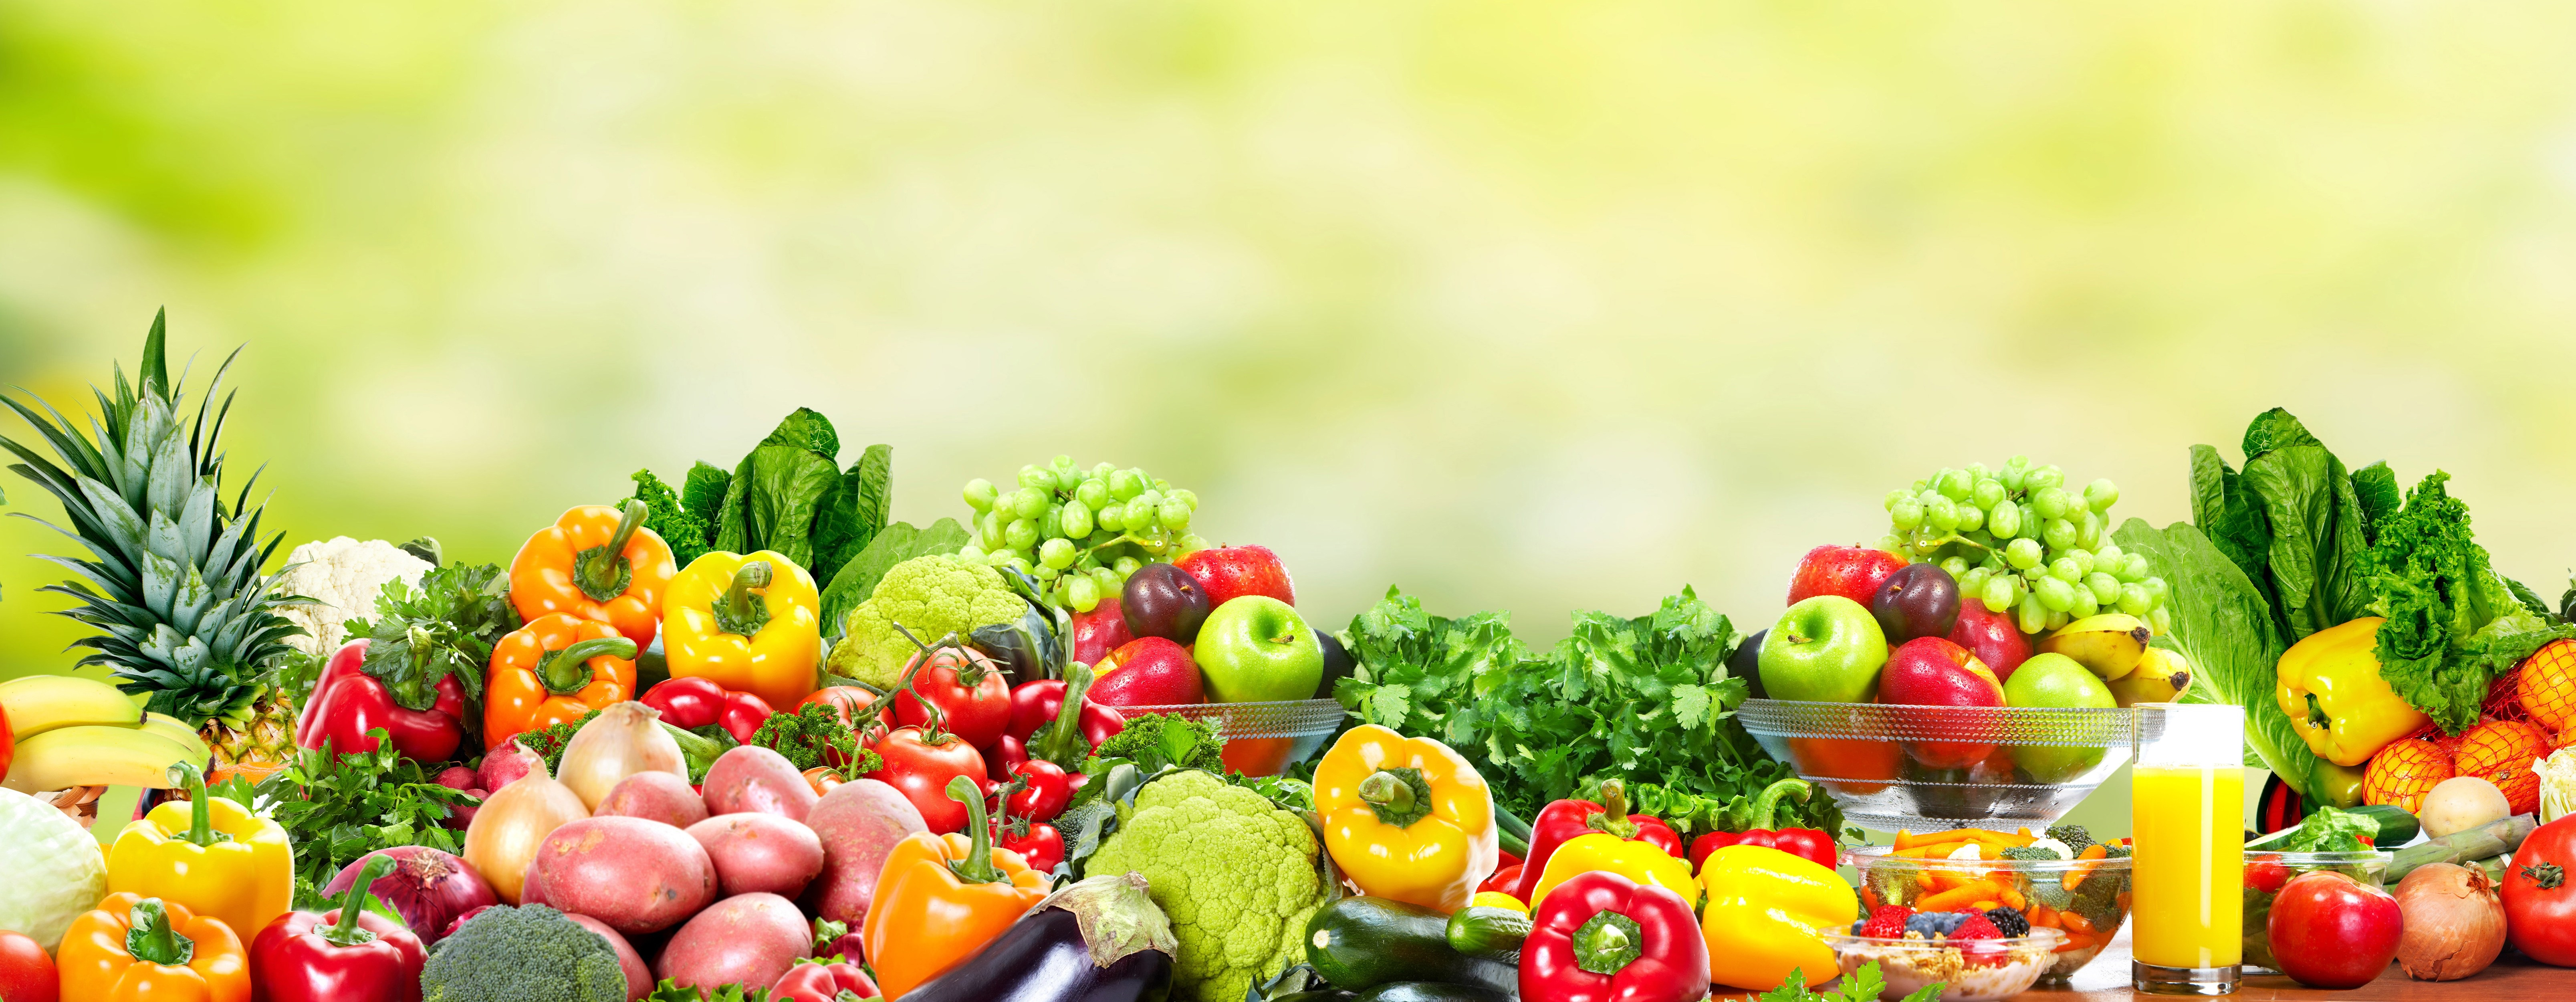 fresh fruits and vegetables health and diet background